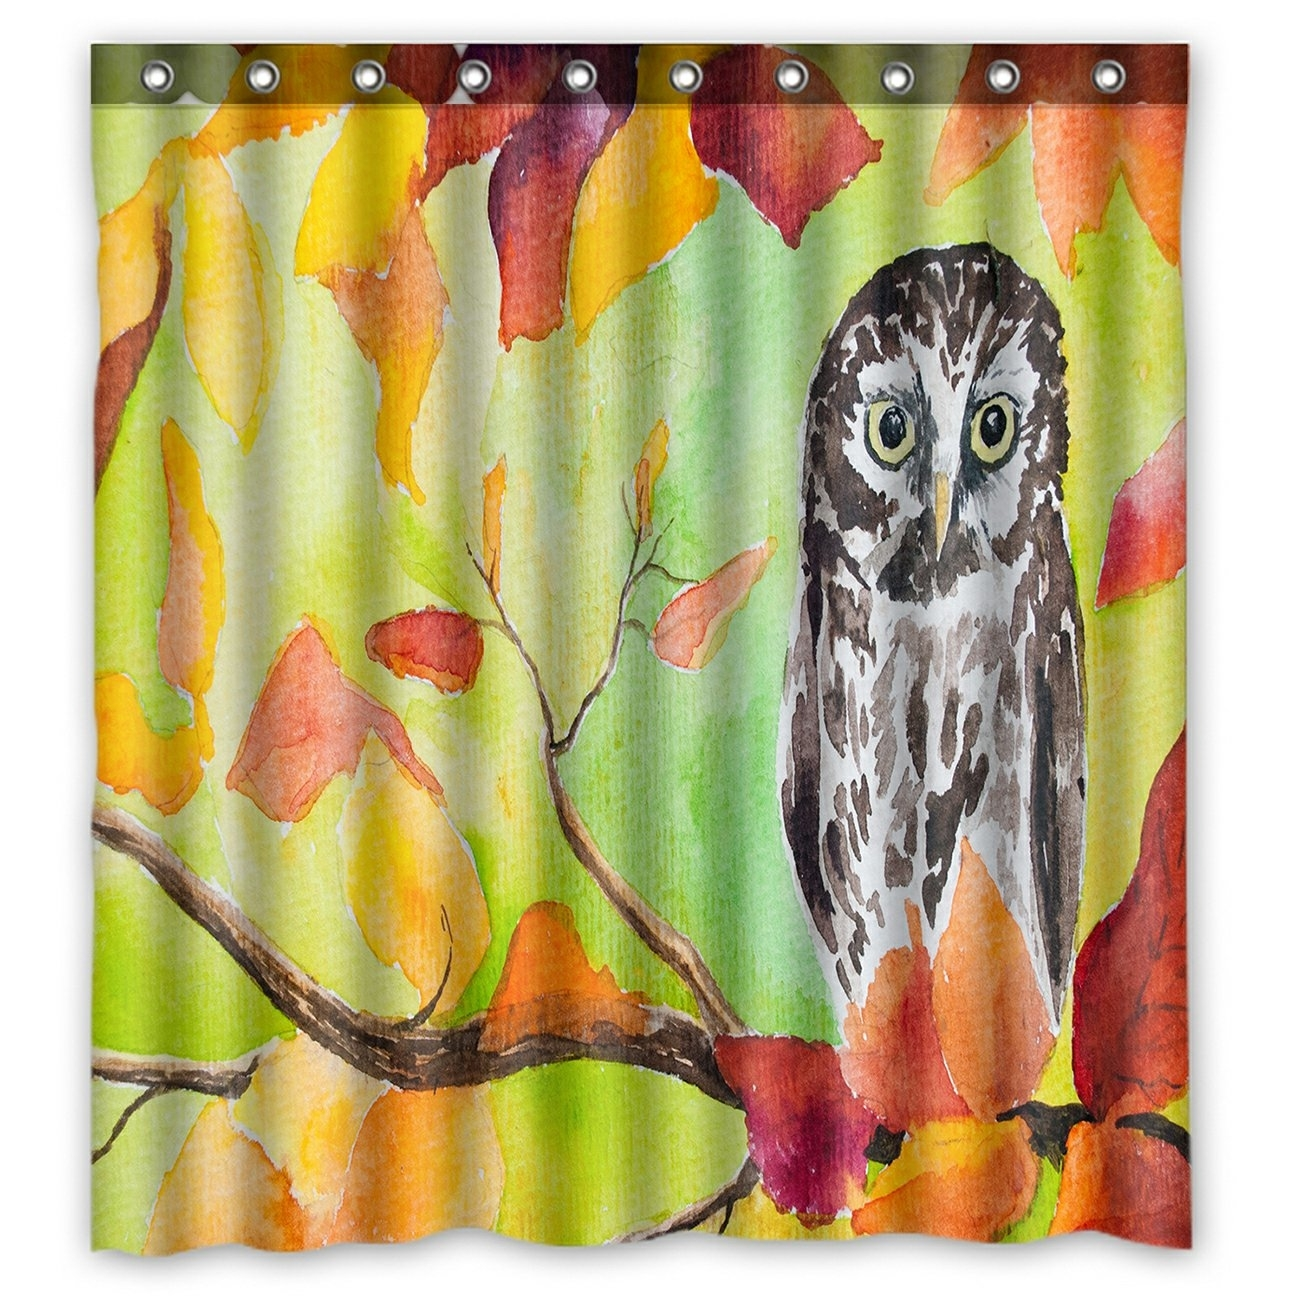 Oil Painting Landscape Shower Curtain, Owl Sitting in the Autumn Forest Tree Shower Curtain 66x72 inch